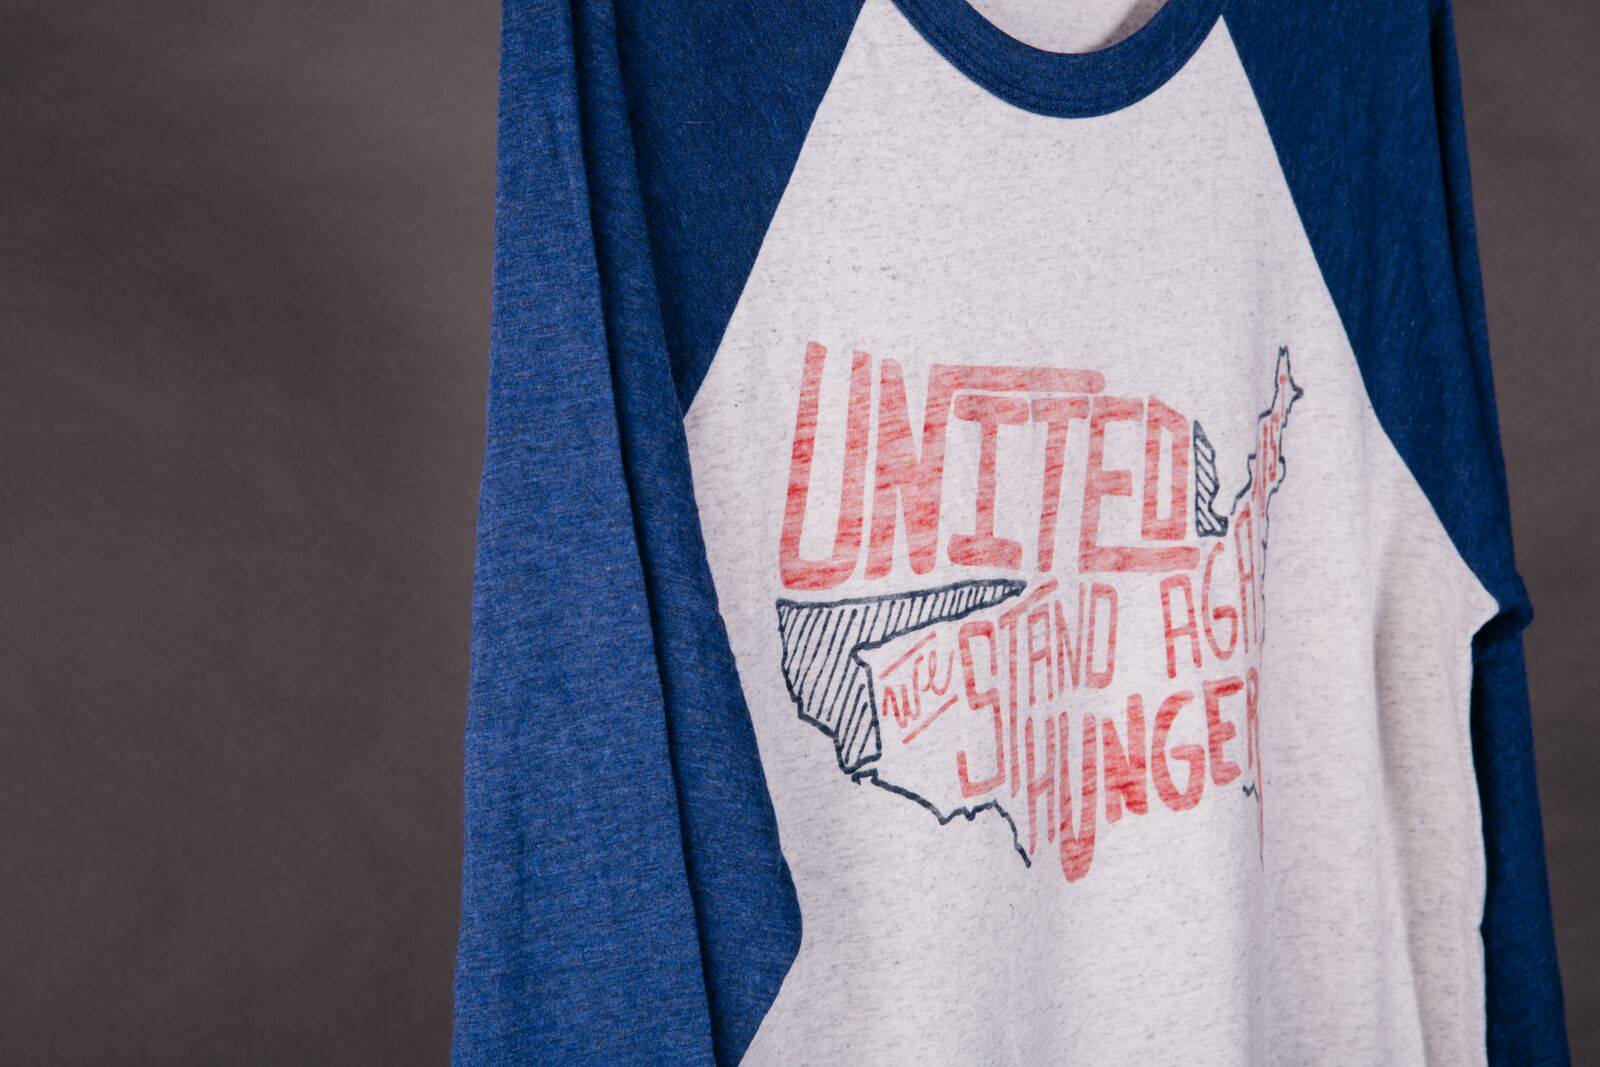 inside out custom printed united we stand t-shirt